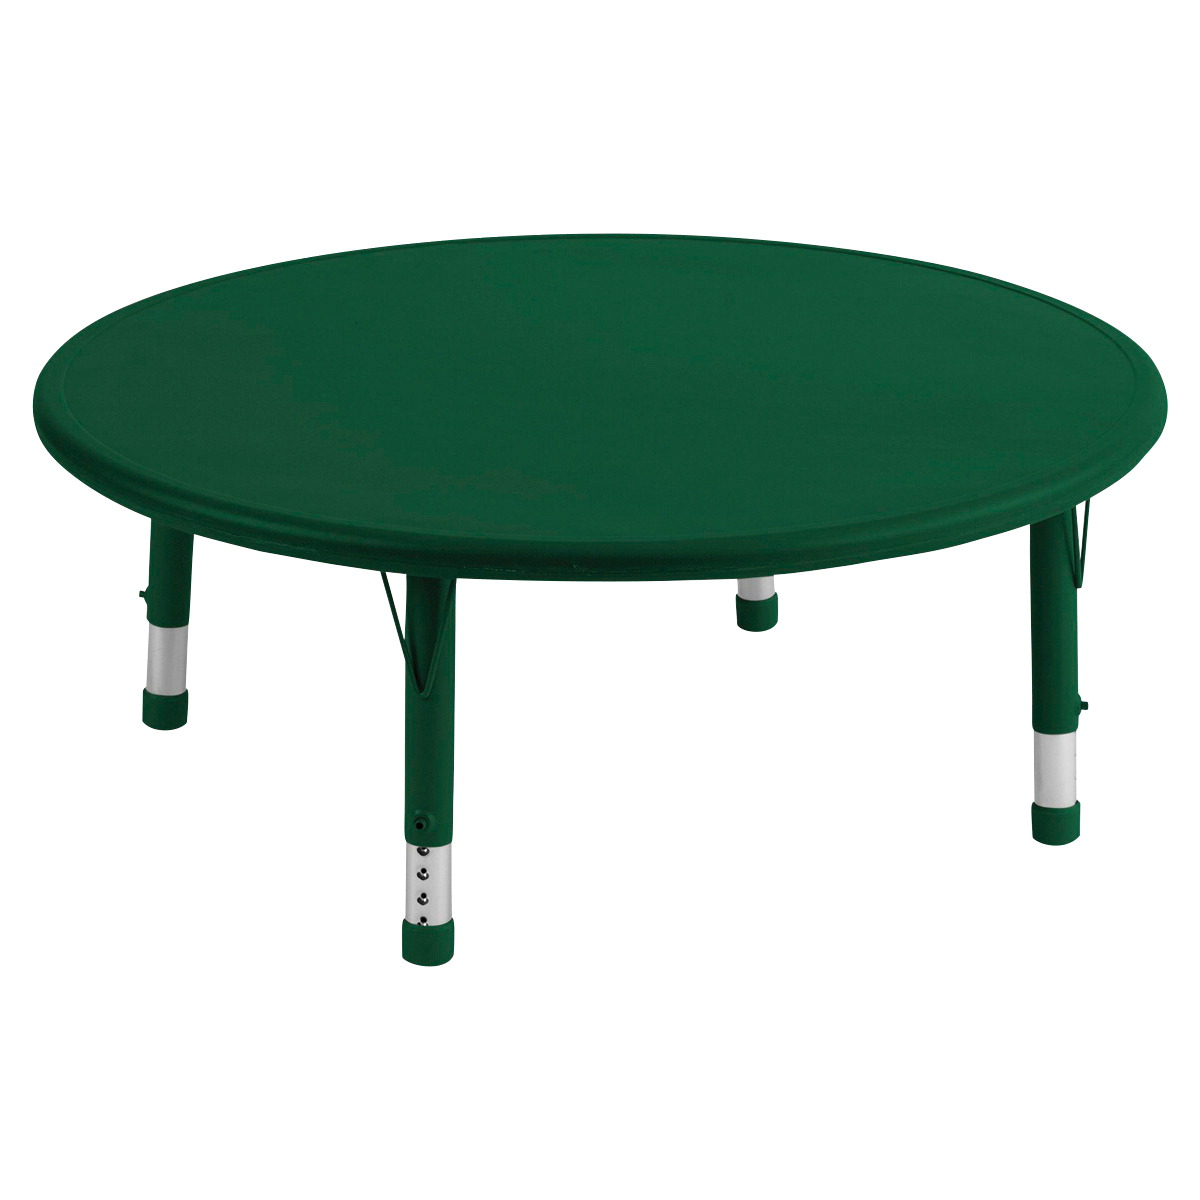 Ecr4kids resin activity table round 45 inches for Html table options